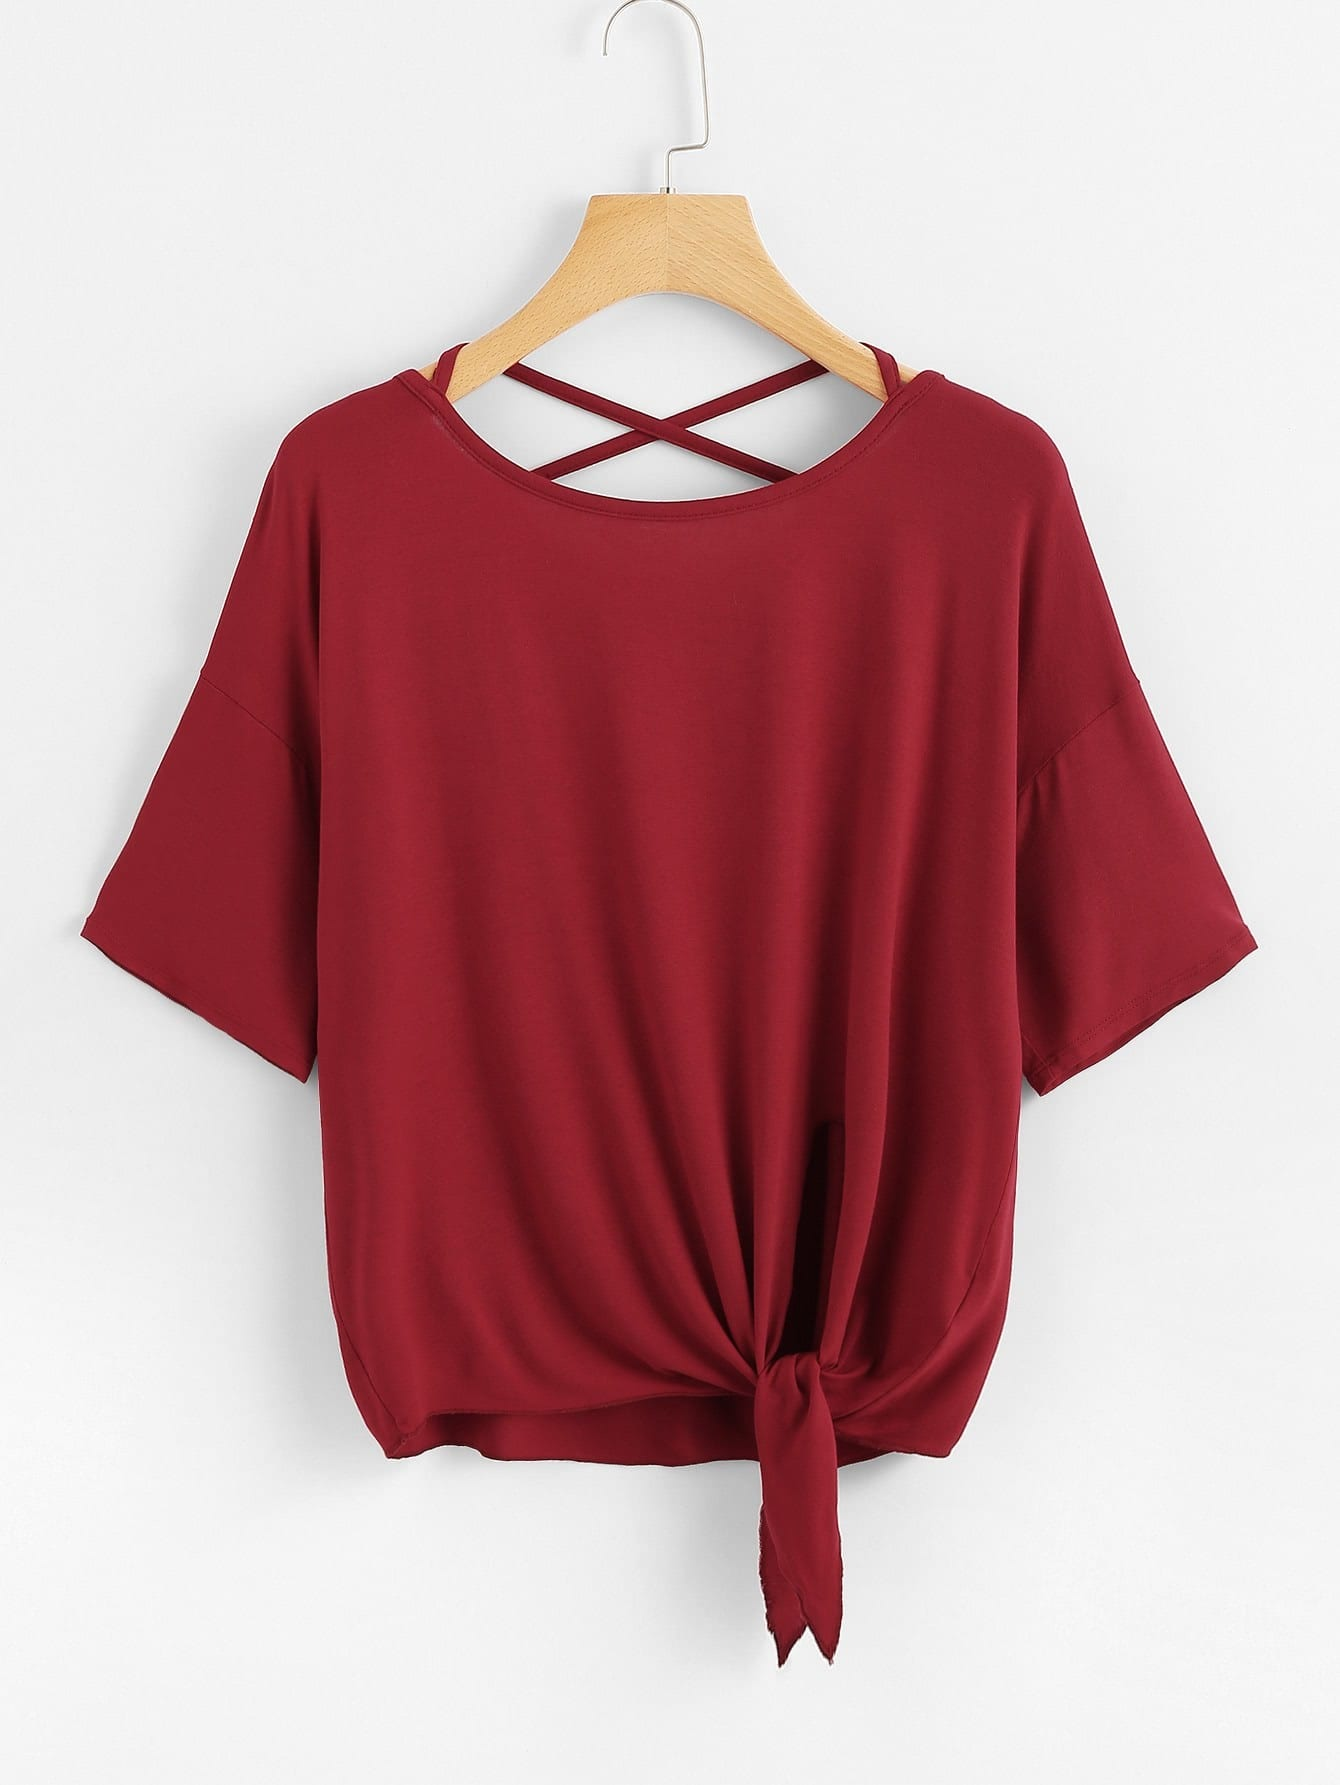 Crisscross Back Knot Hem Tee knot hem red lip tee